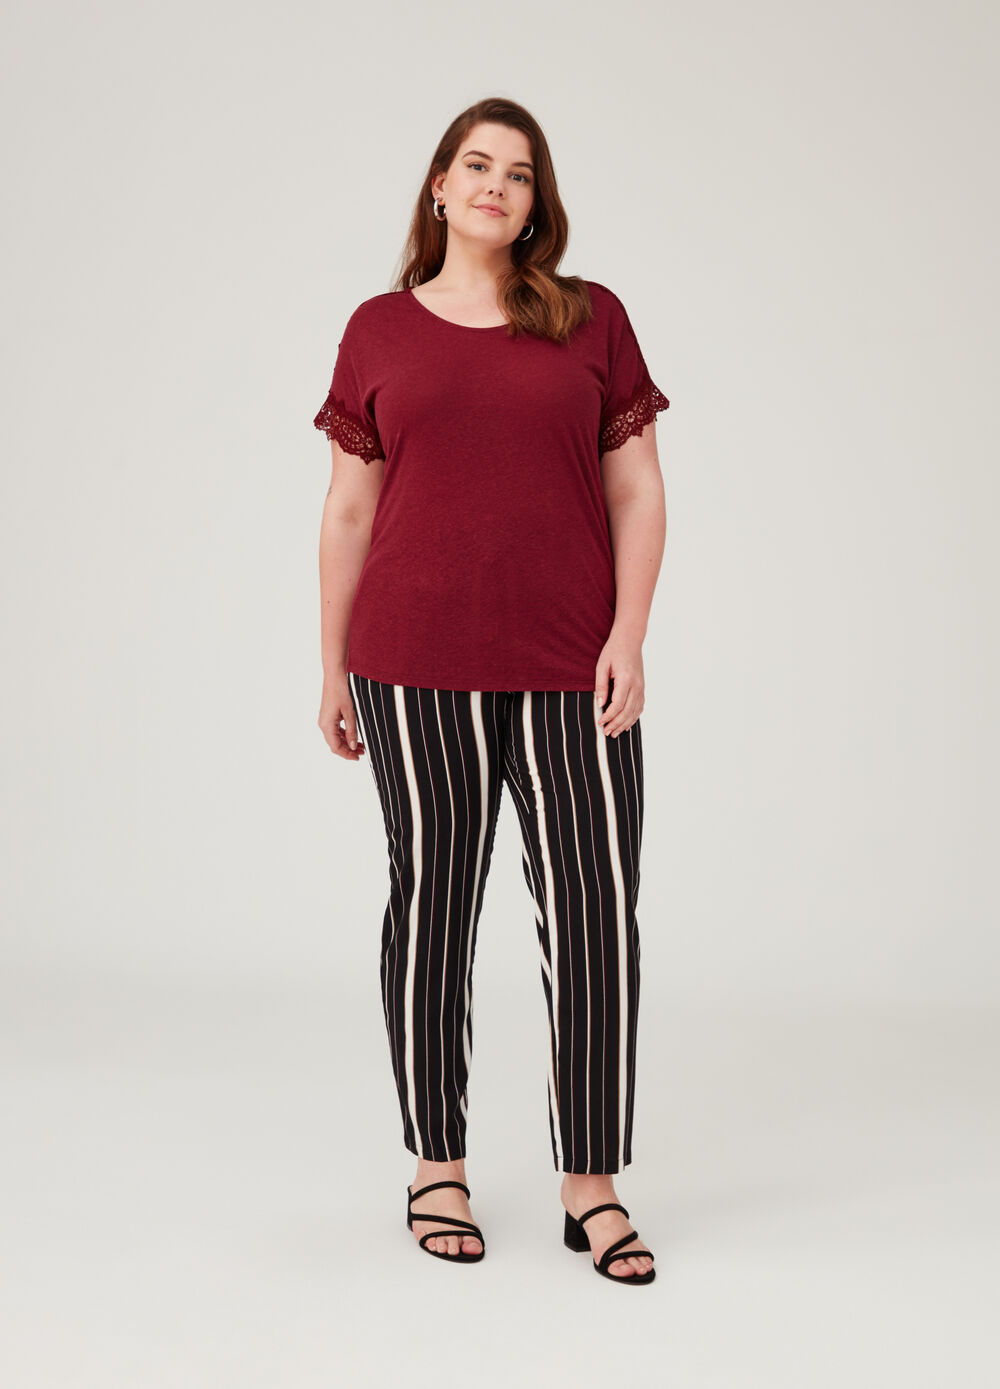 Curvy T-shirt in linen and viscose with lace insert